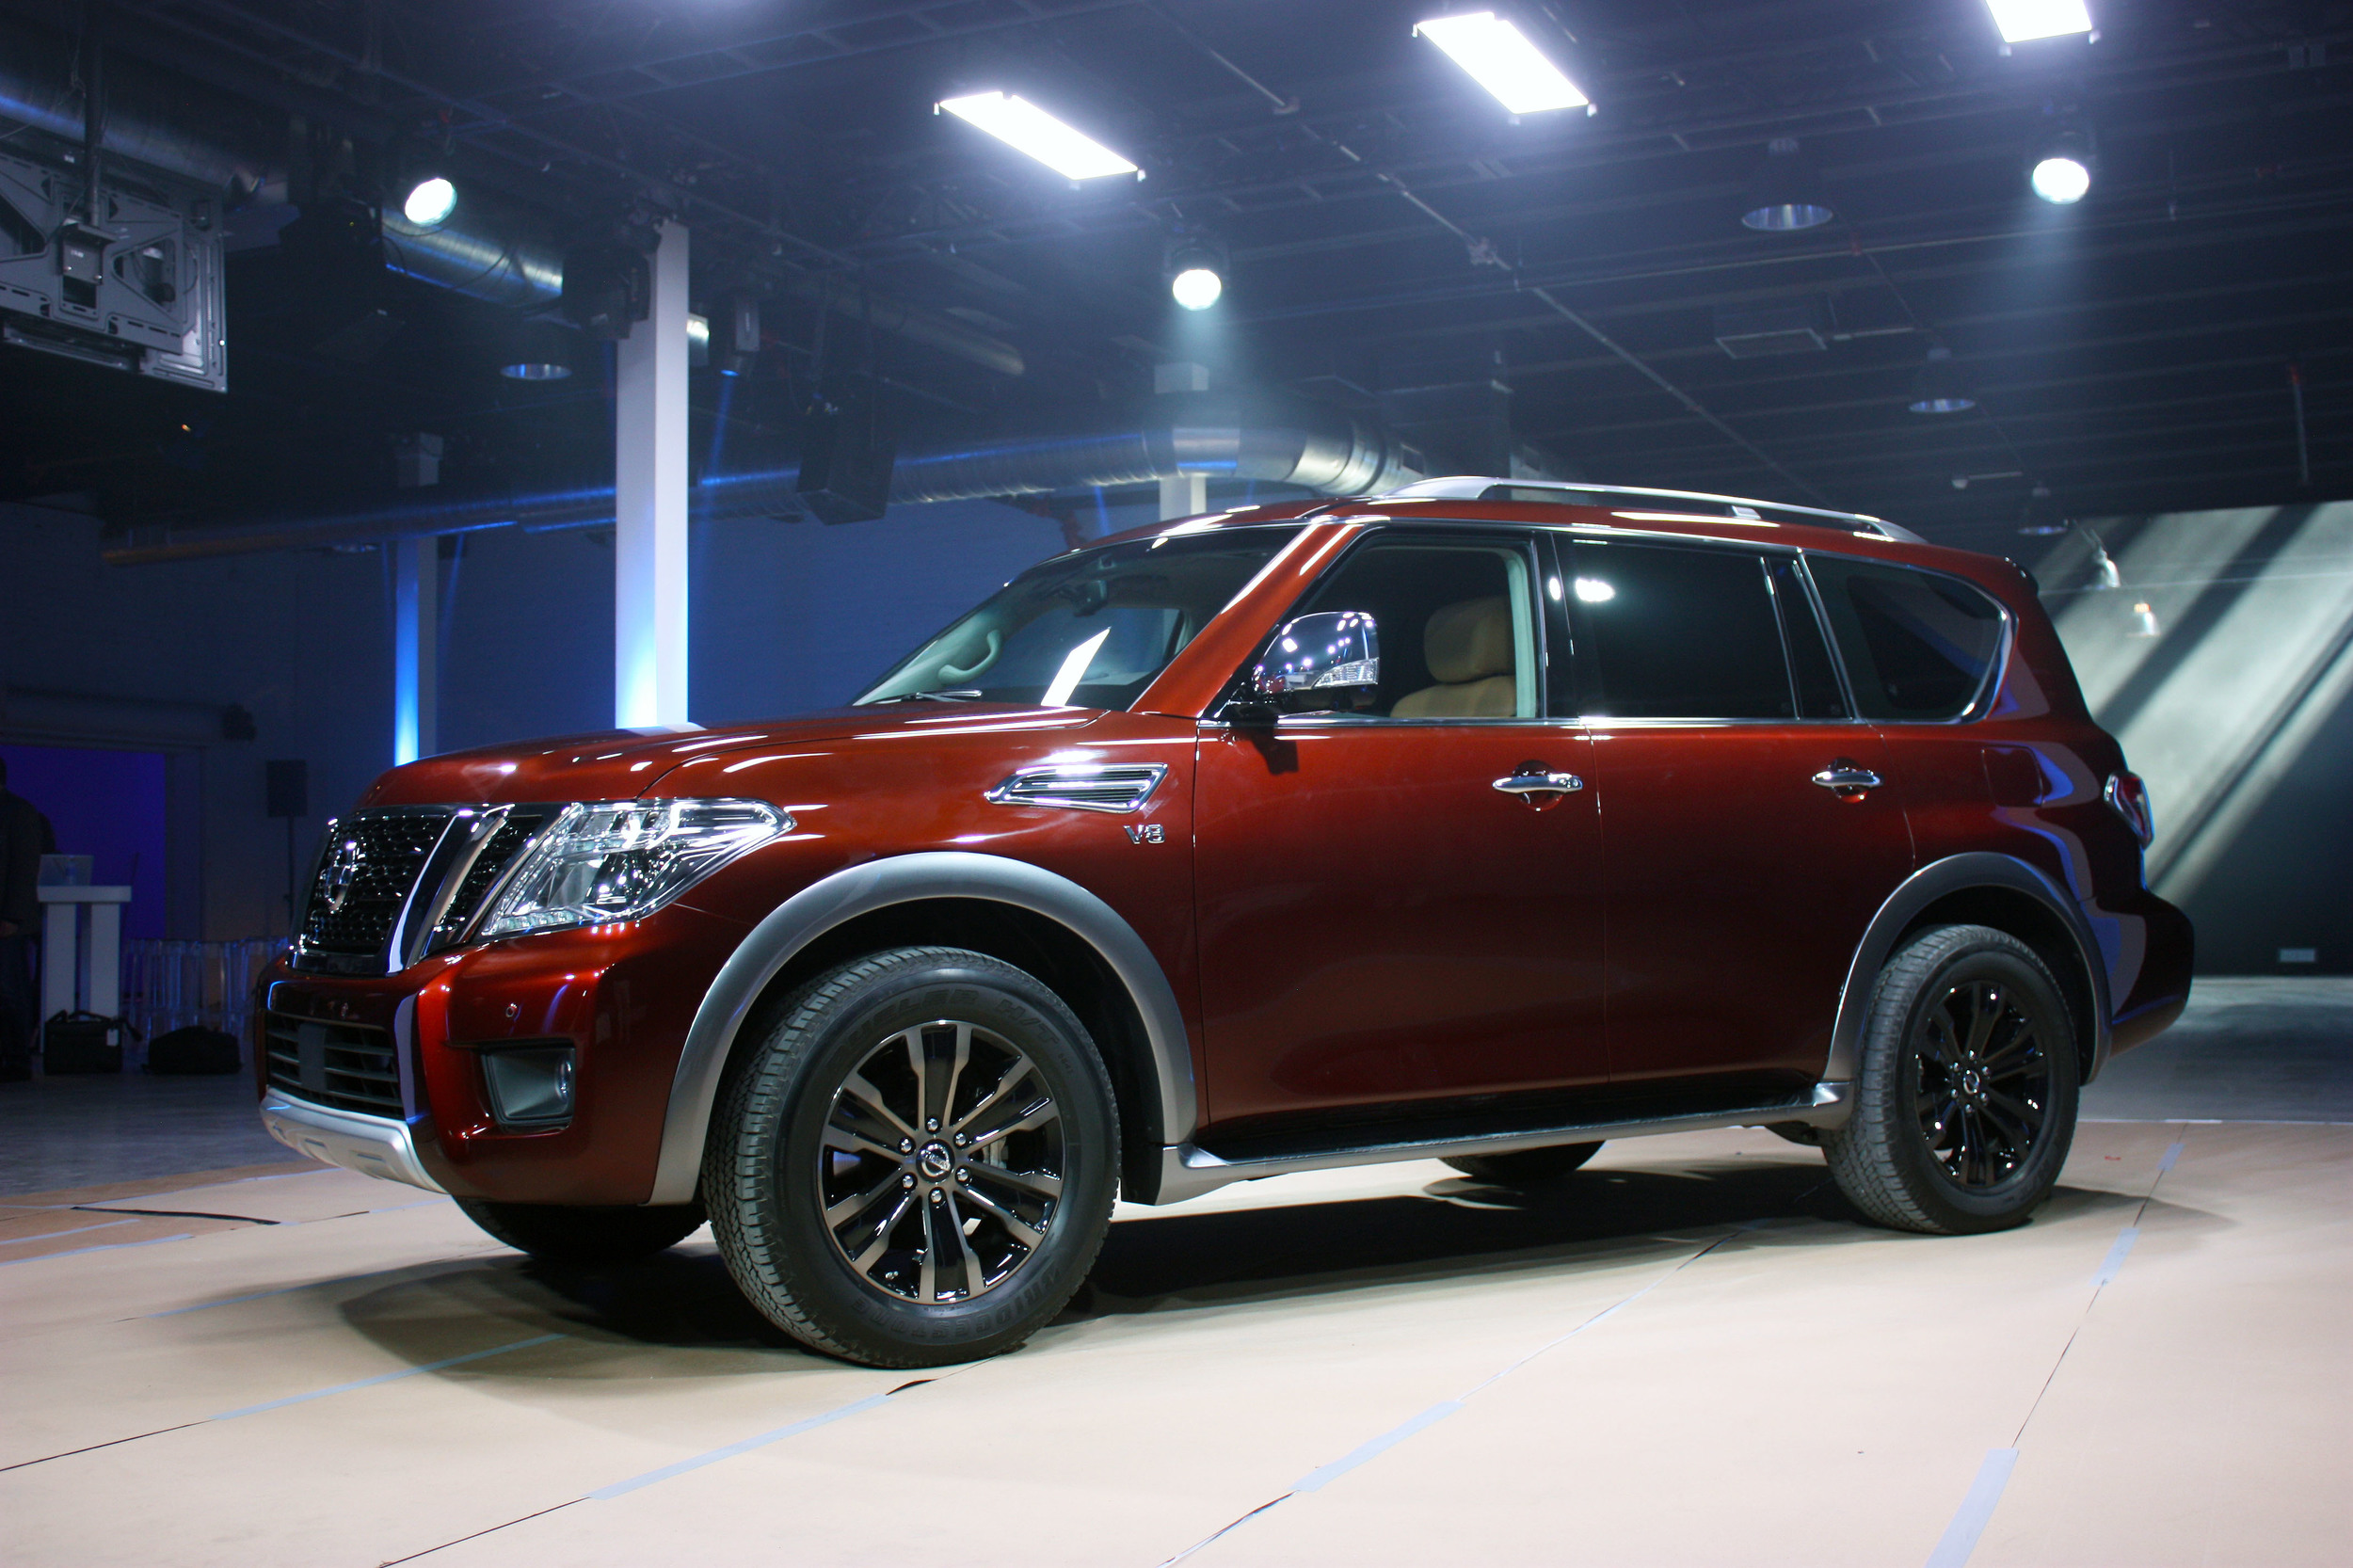 fate nissan xd news prevnext unknown model armada changes titan xterra gone